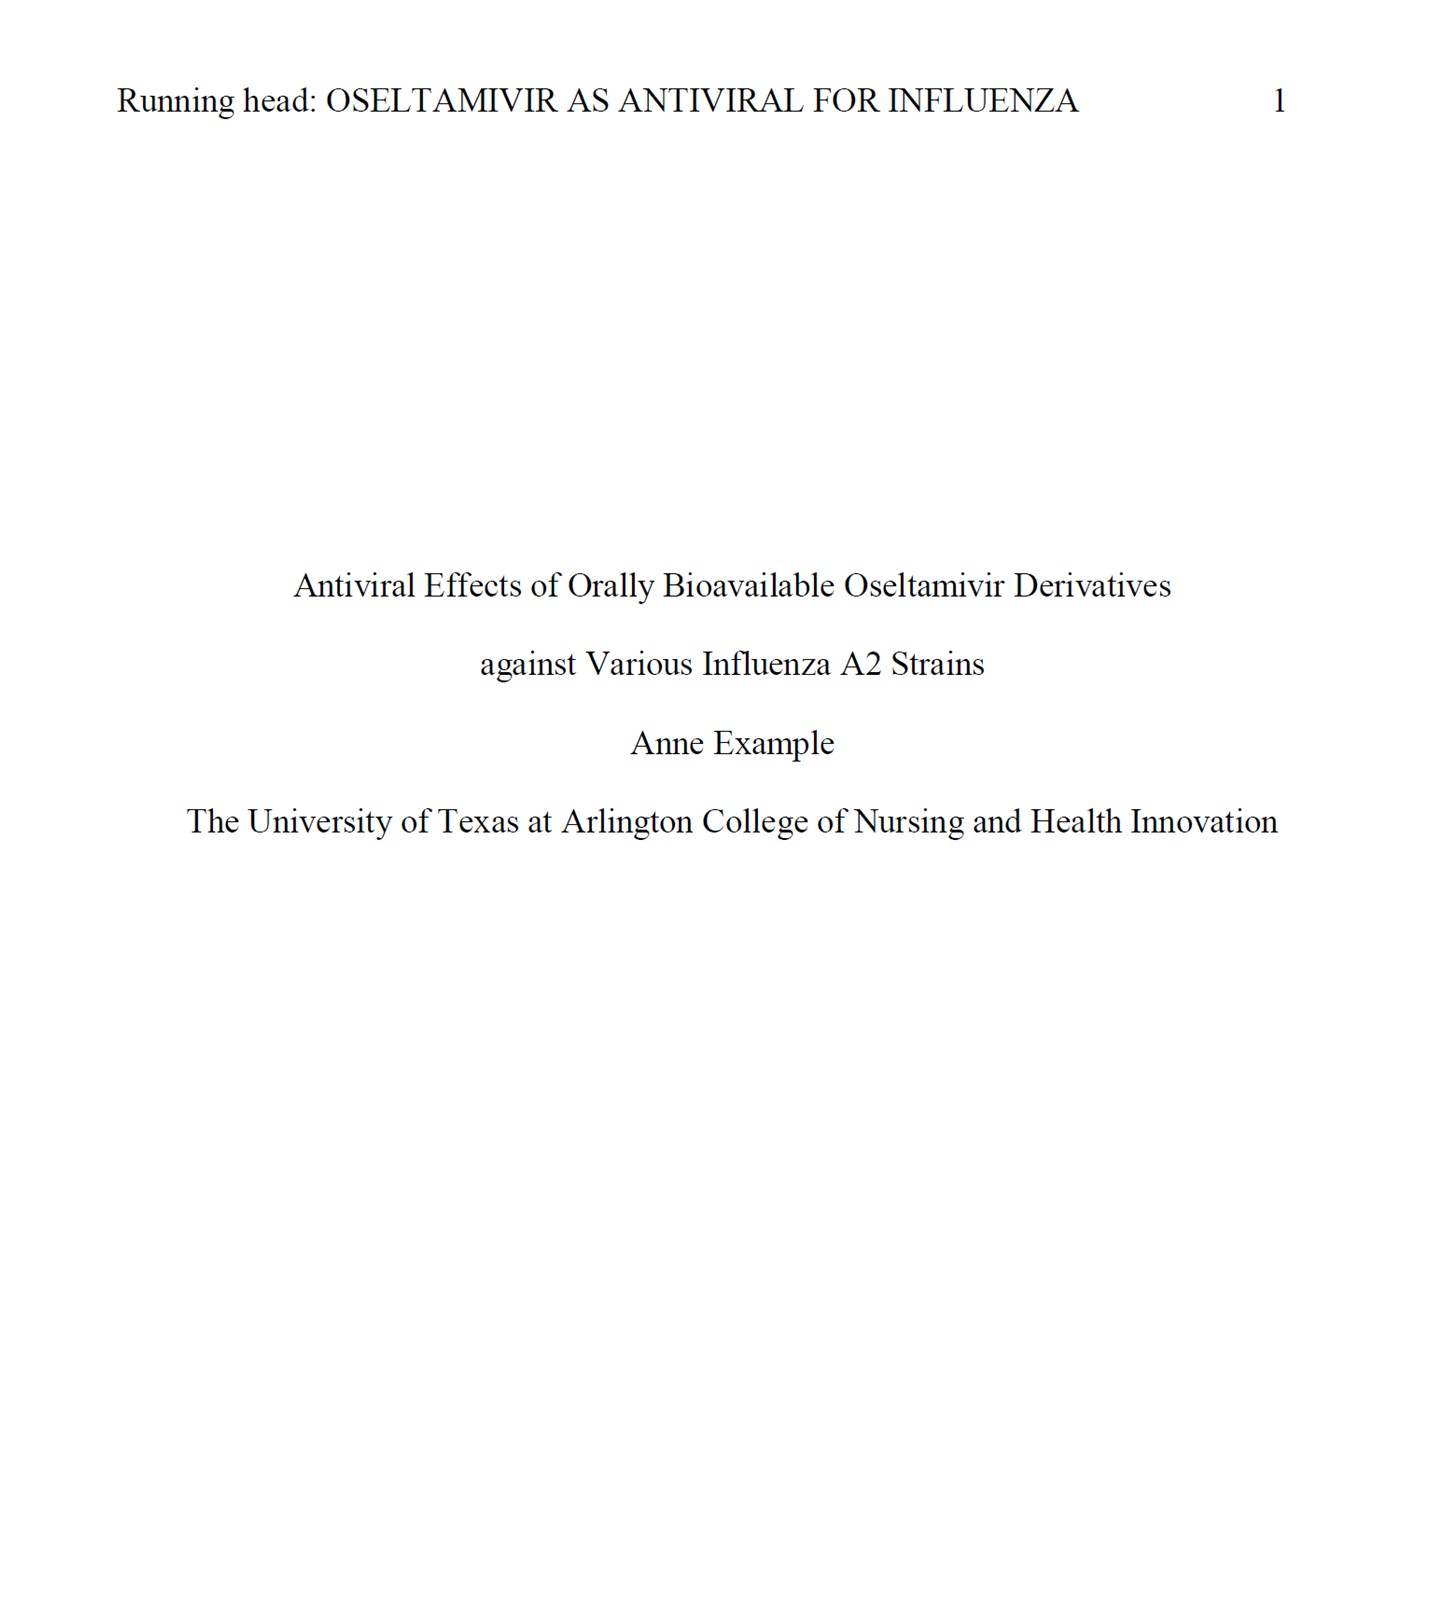 008 Research Paper Cover Page Apa Excellent Reference Format Sample Full